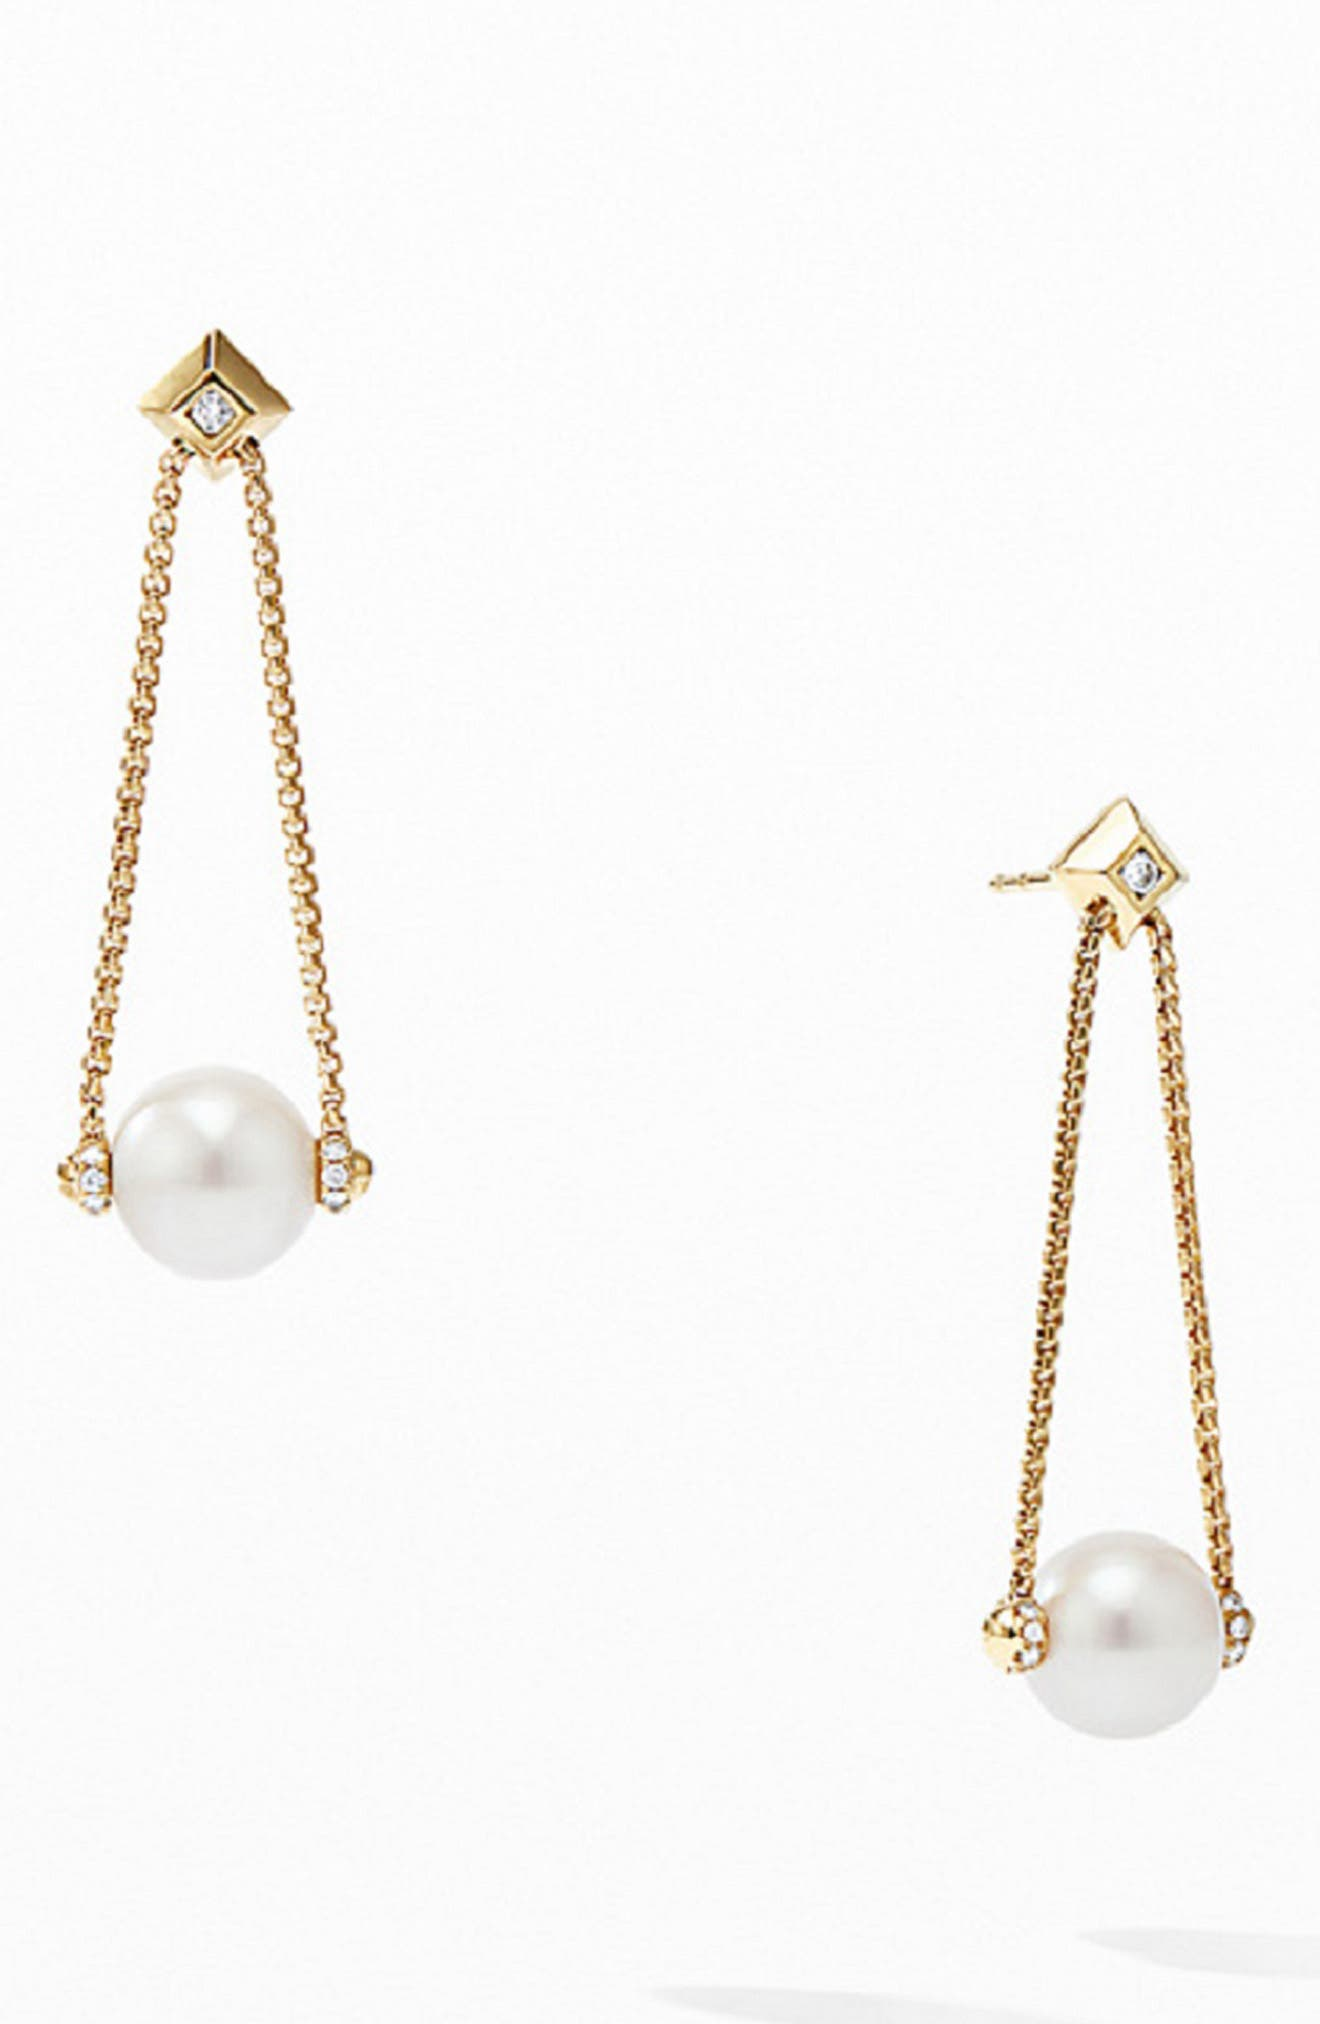 Solari Pearl Drop Earrings with Diamonds in 18K Yellow Gold,                         Main,                         color, PEARL